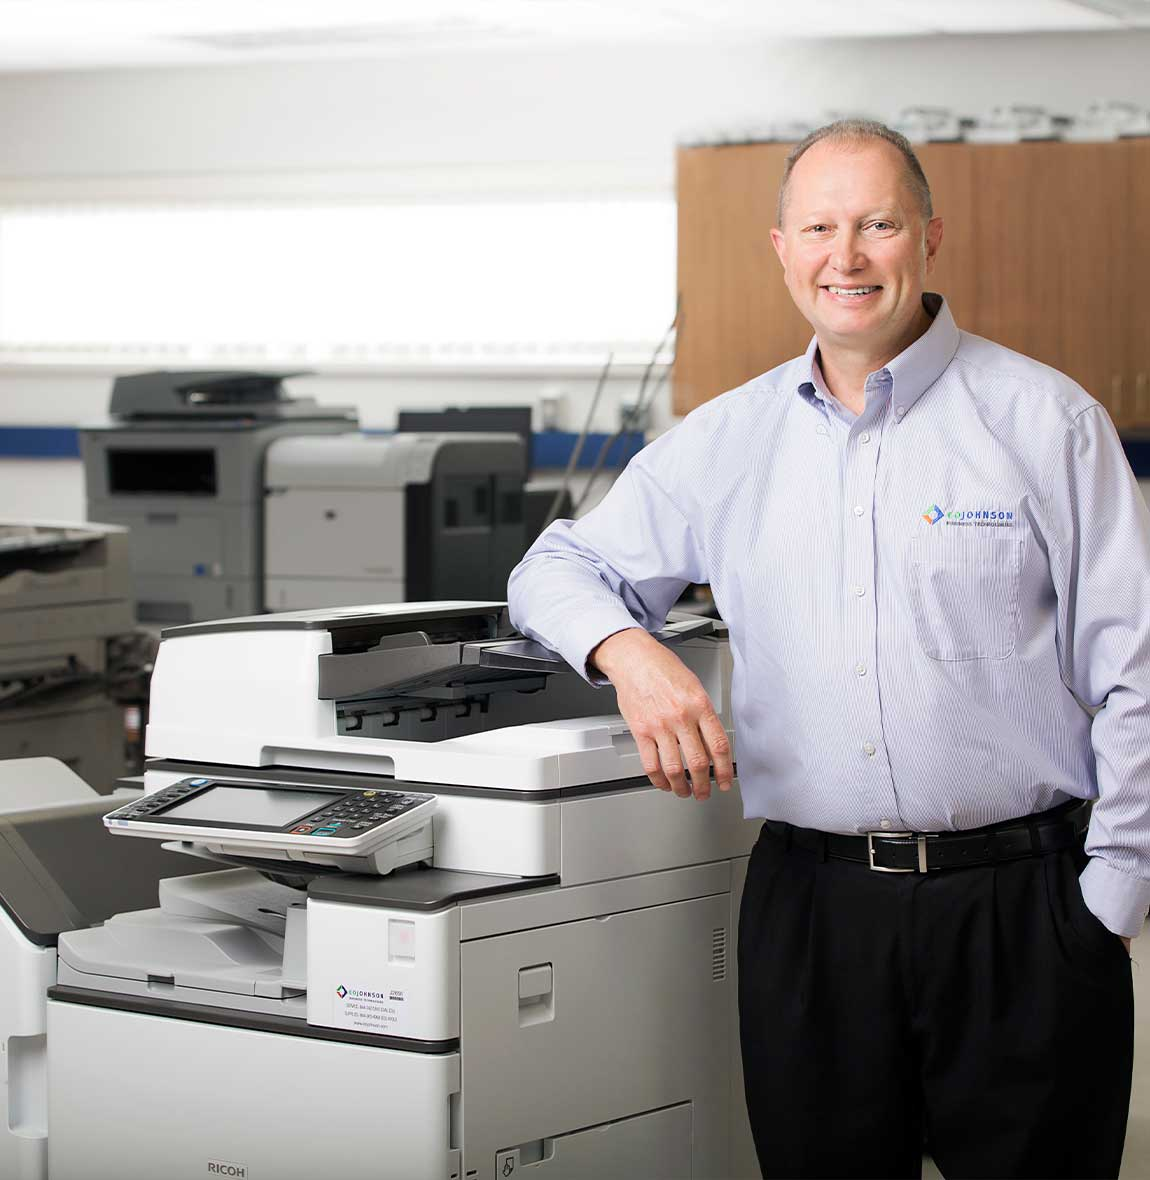 eo_johnson_employee_smiling_next_to_ricoh_copier